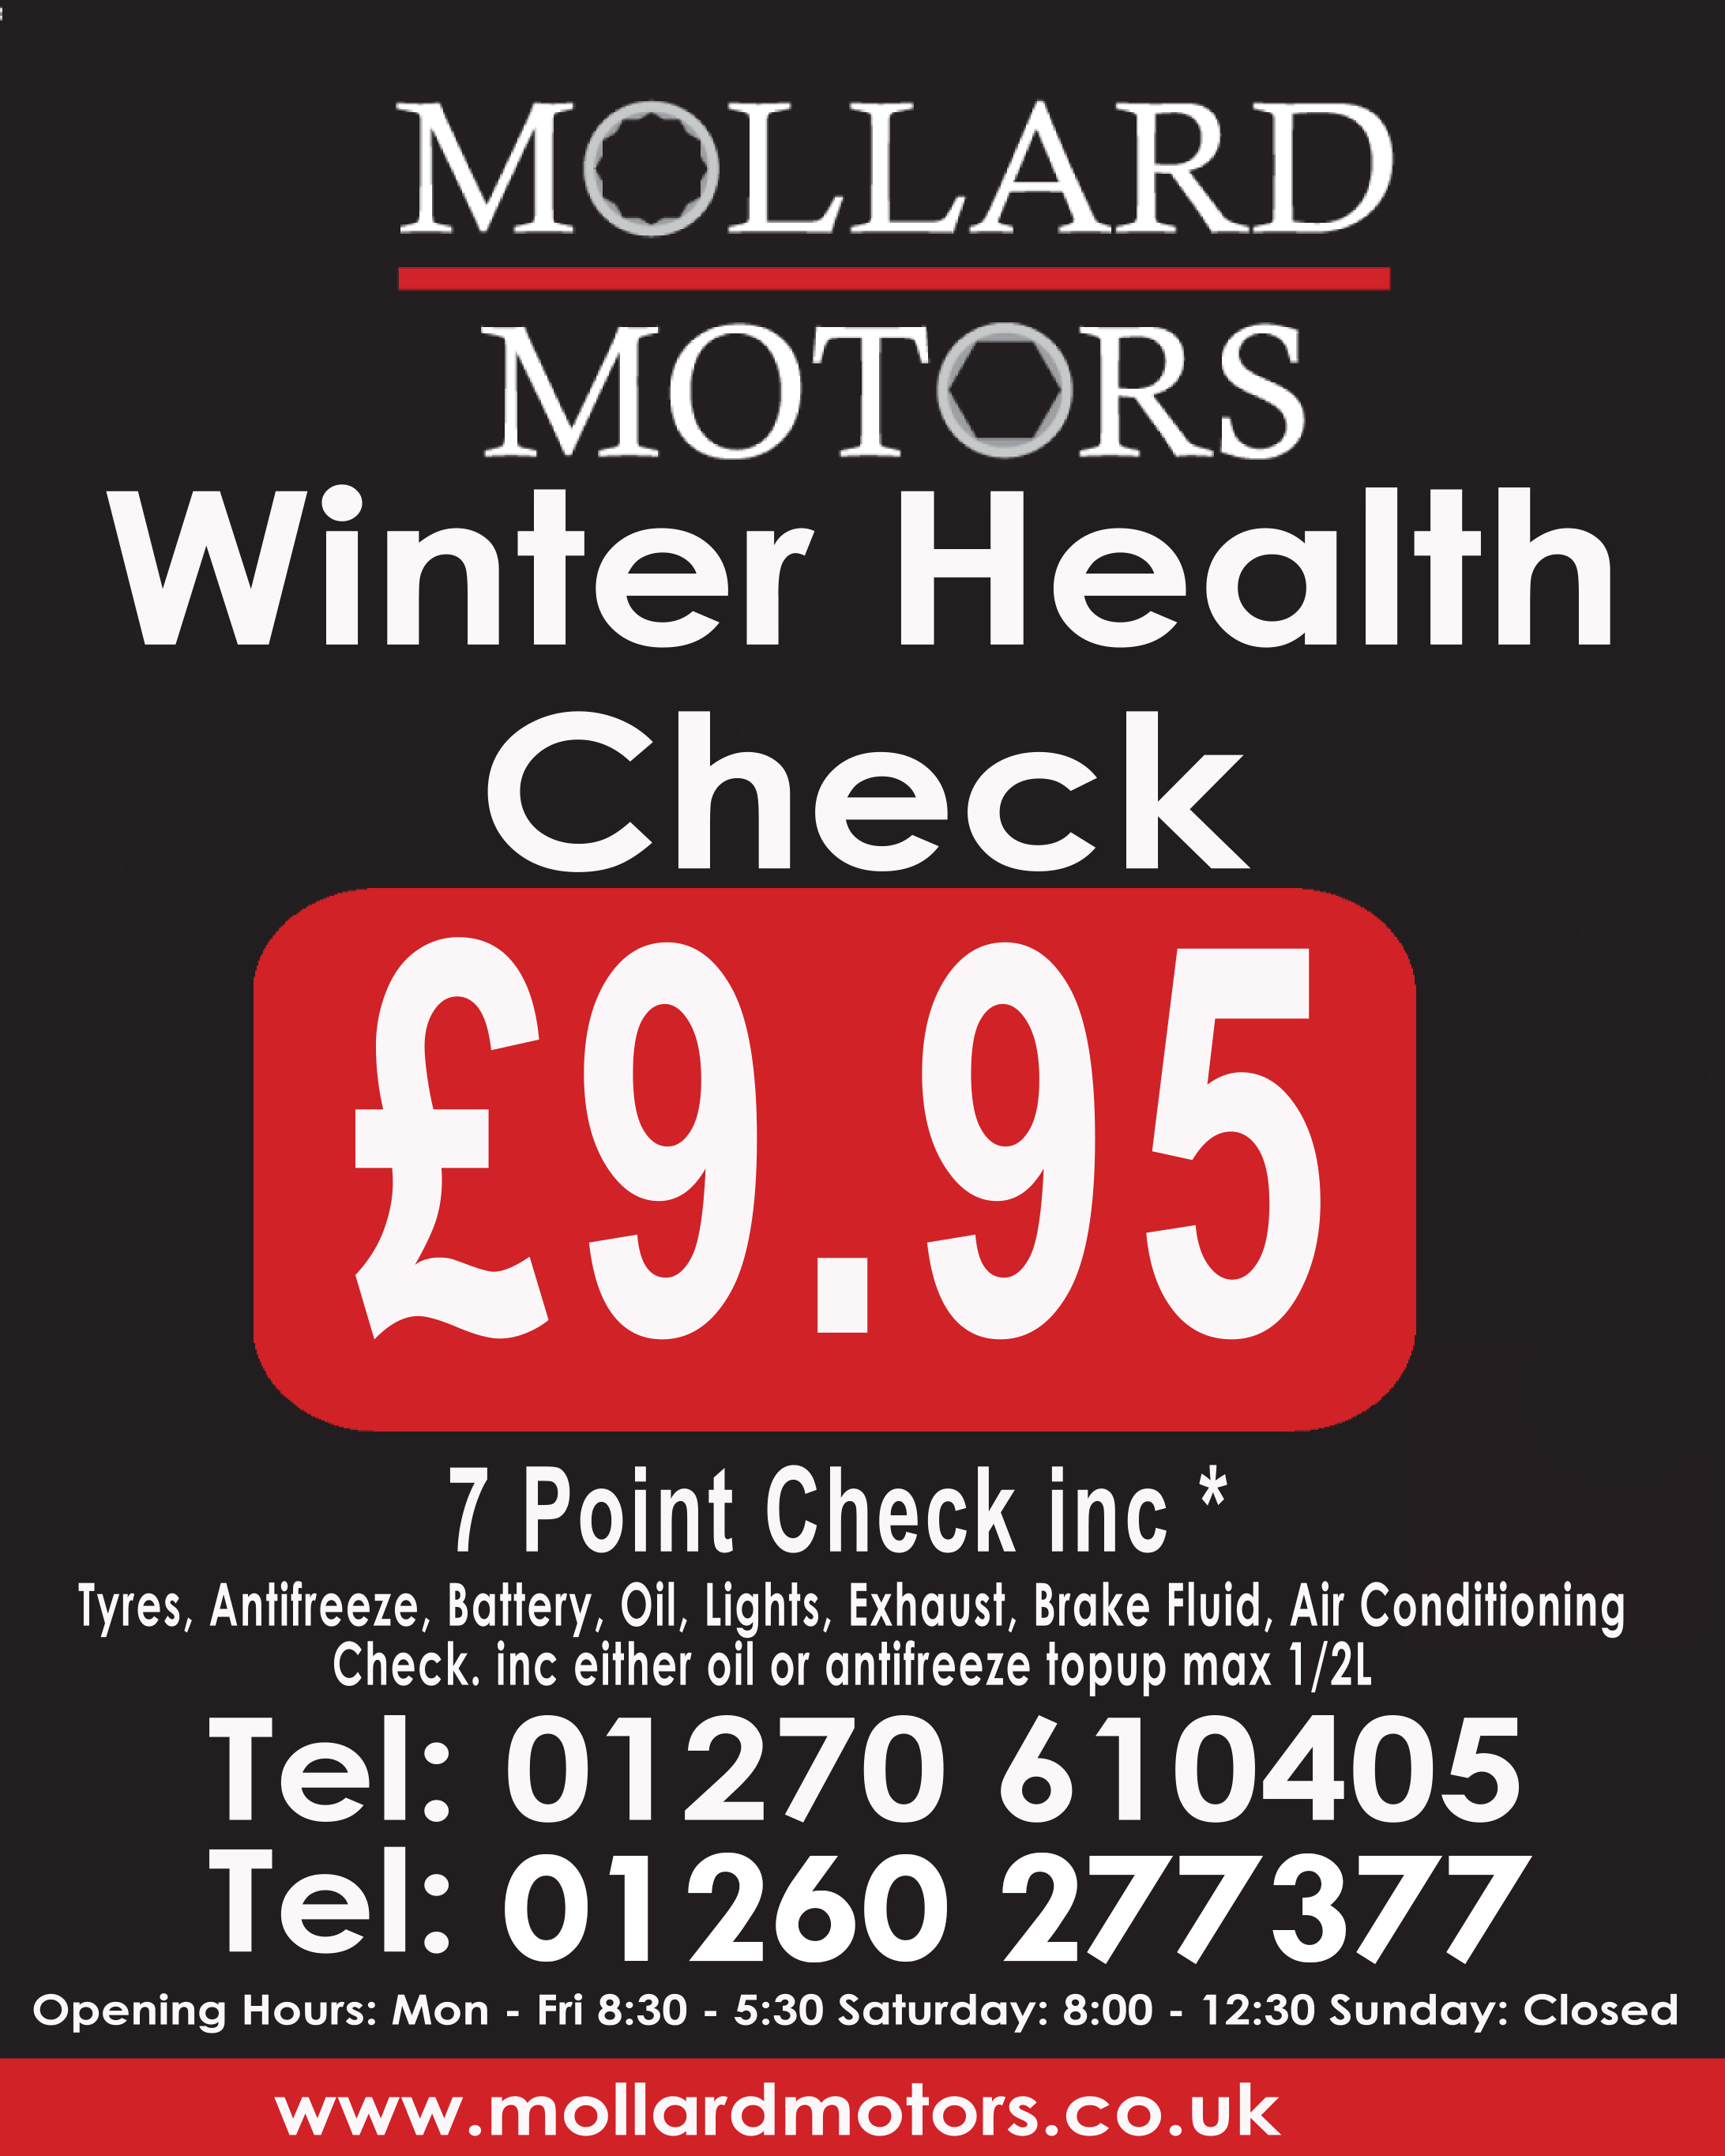 7 POINT WINTER HEALTH CHECK FROM £9.95